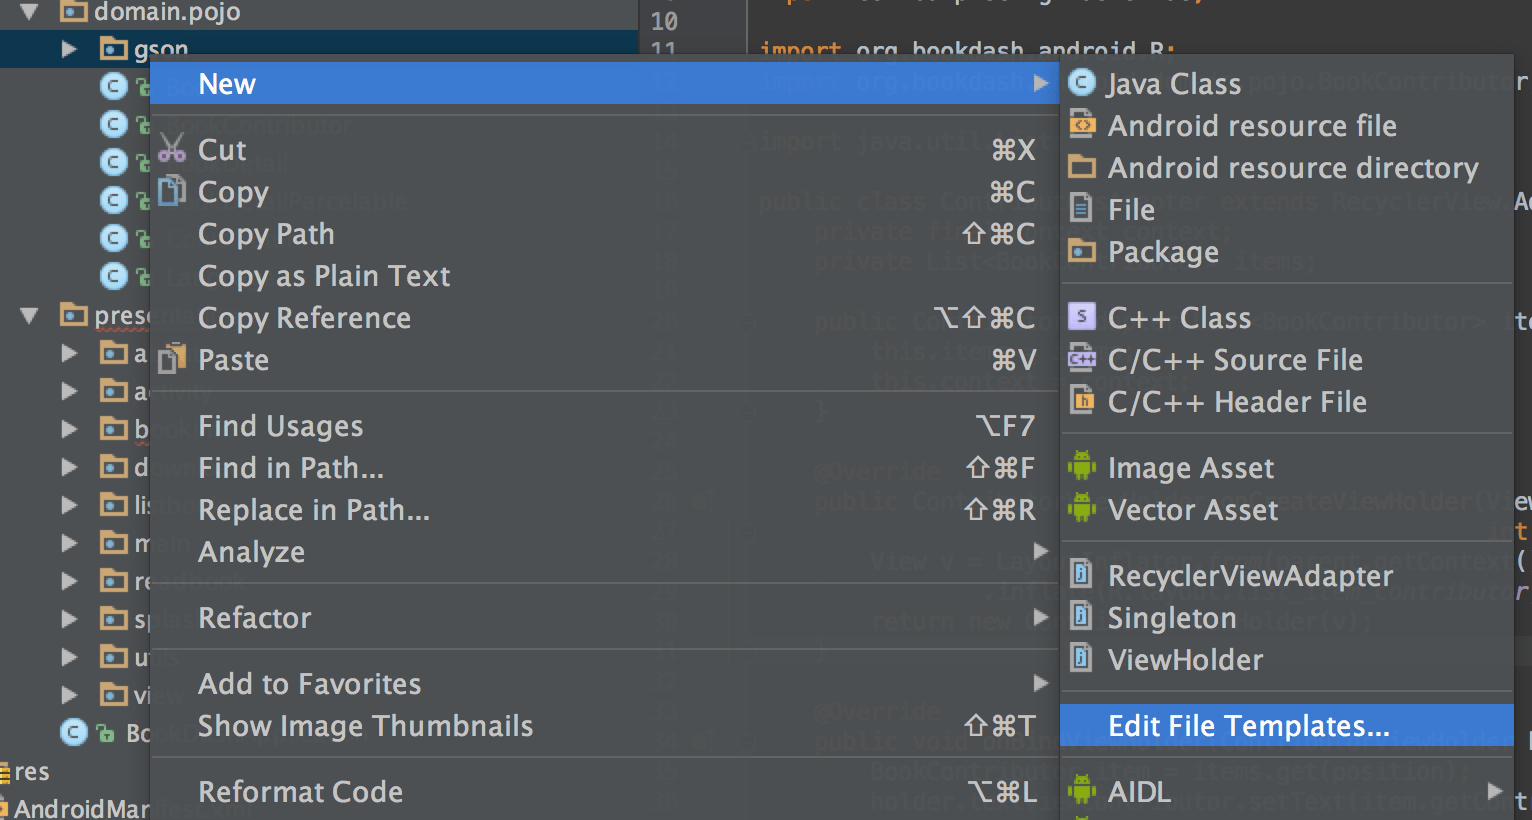 How to make your own File Templates in Android Studio - Part